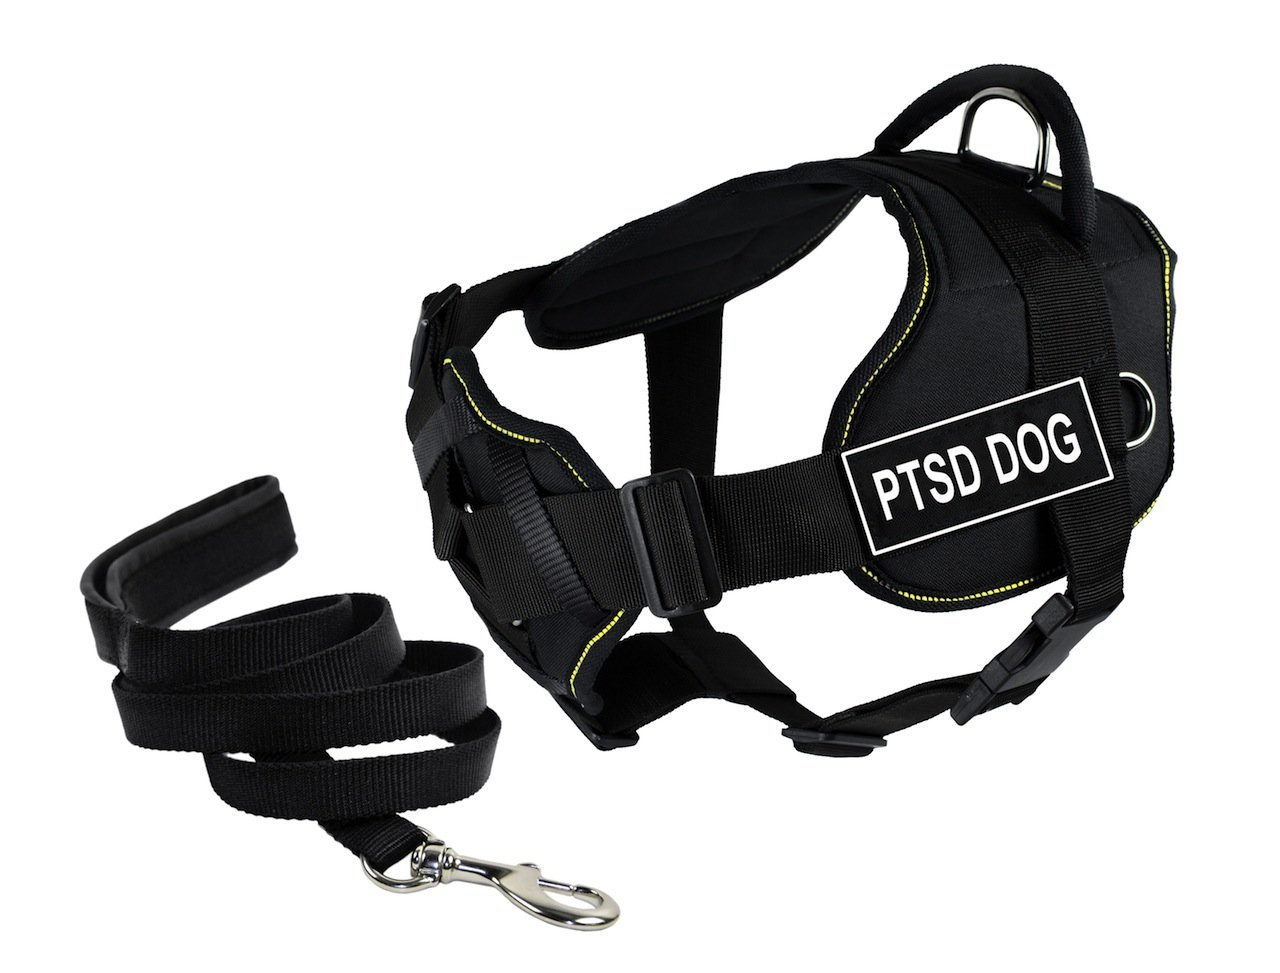 Dean & Tyler Bundle of 22 to 27-Inch DT Fun Harness with Chest Support and 6-Feet Stainless Snap Padded Puppy Leash, PTSD Dog, Black with Yellow Trim